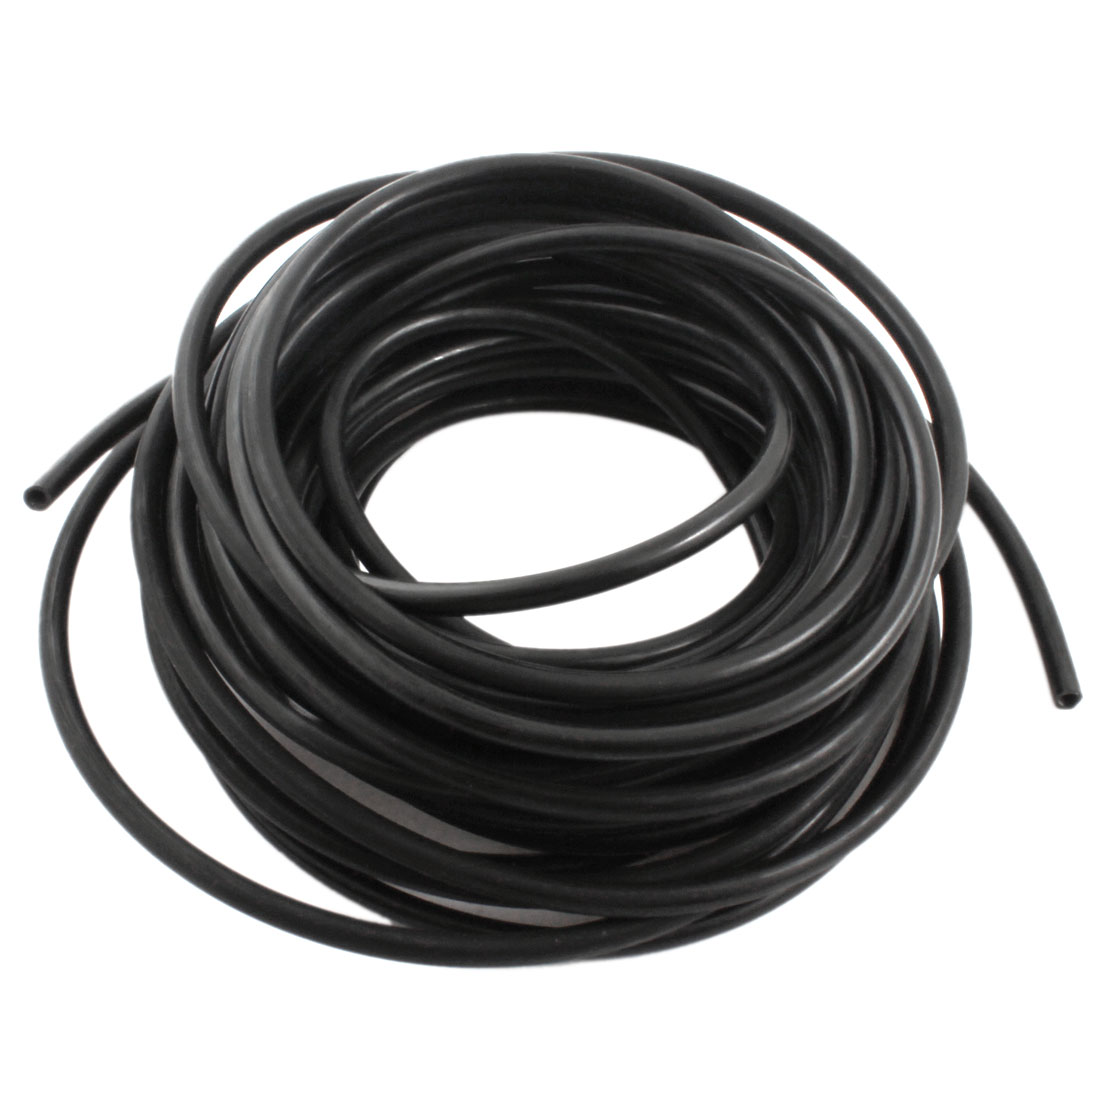 Engine Gas Fuel Oil Injection PU Line Tubing Tube 4mmx6mm Dia 5M Black